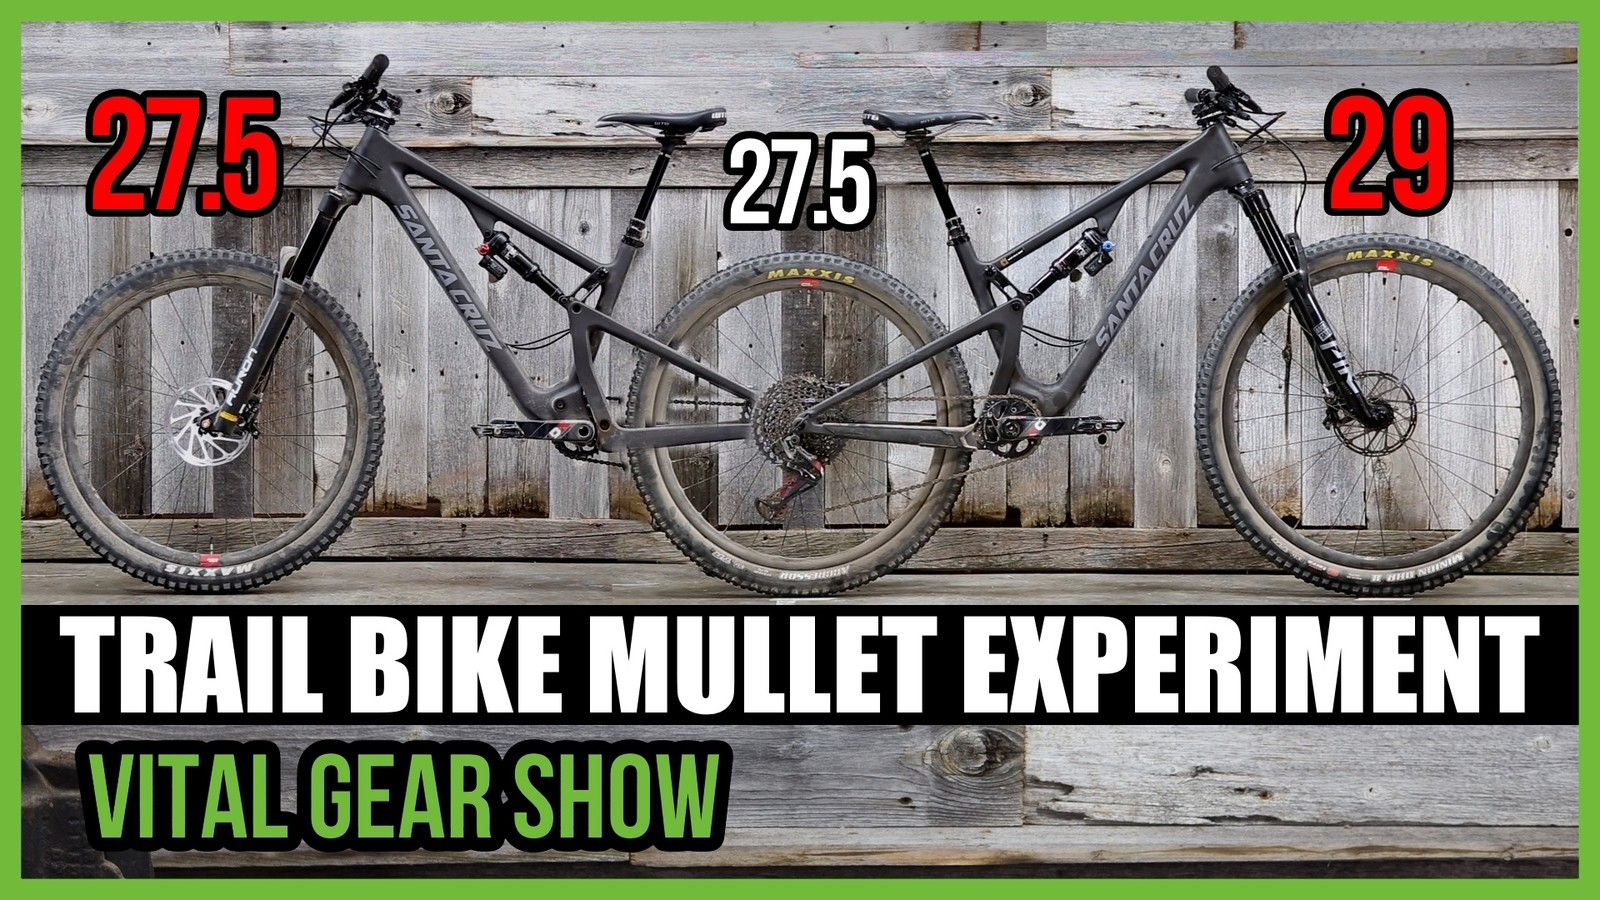 TRAIL BIKE MULLET EXPERIMENT - Vital Gear Show